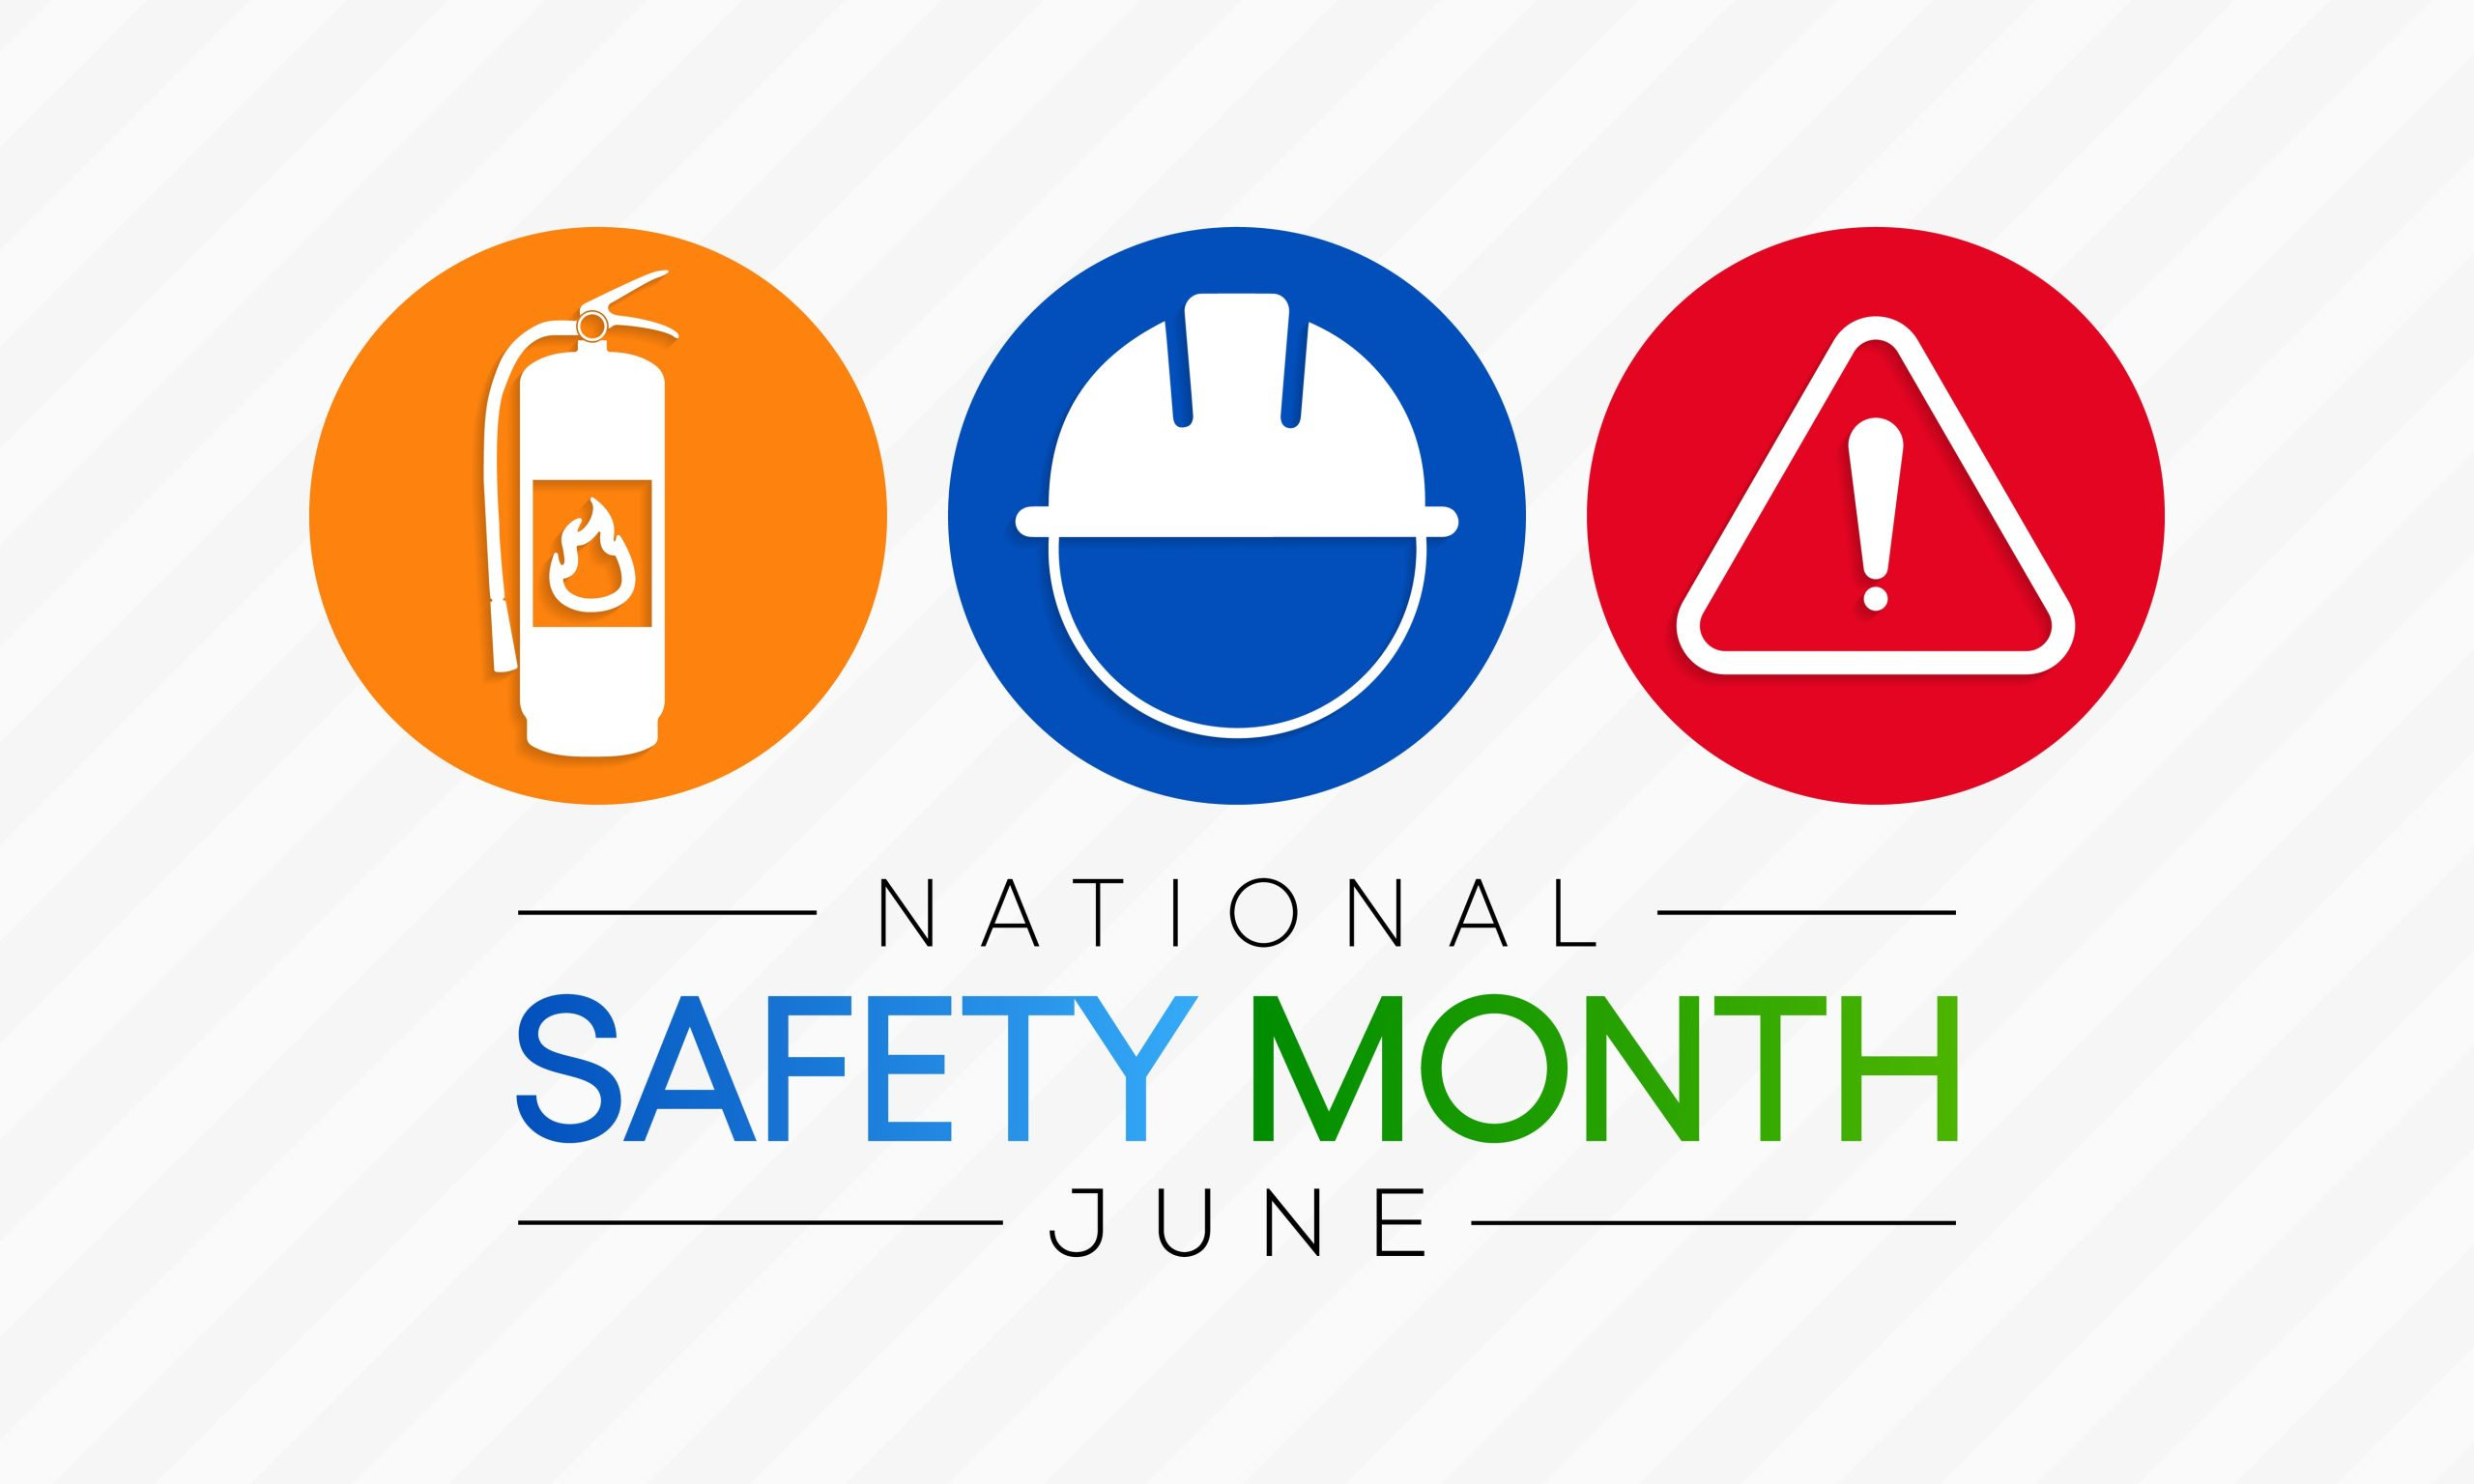 national safety month june